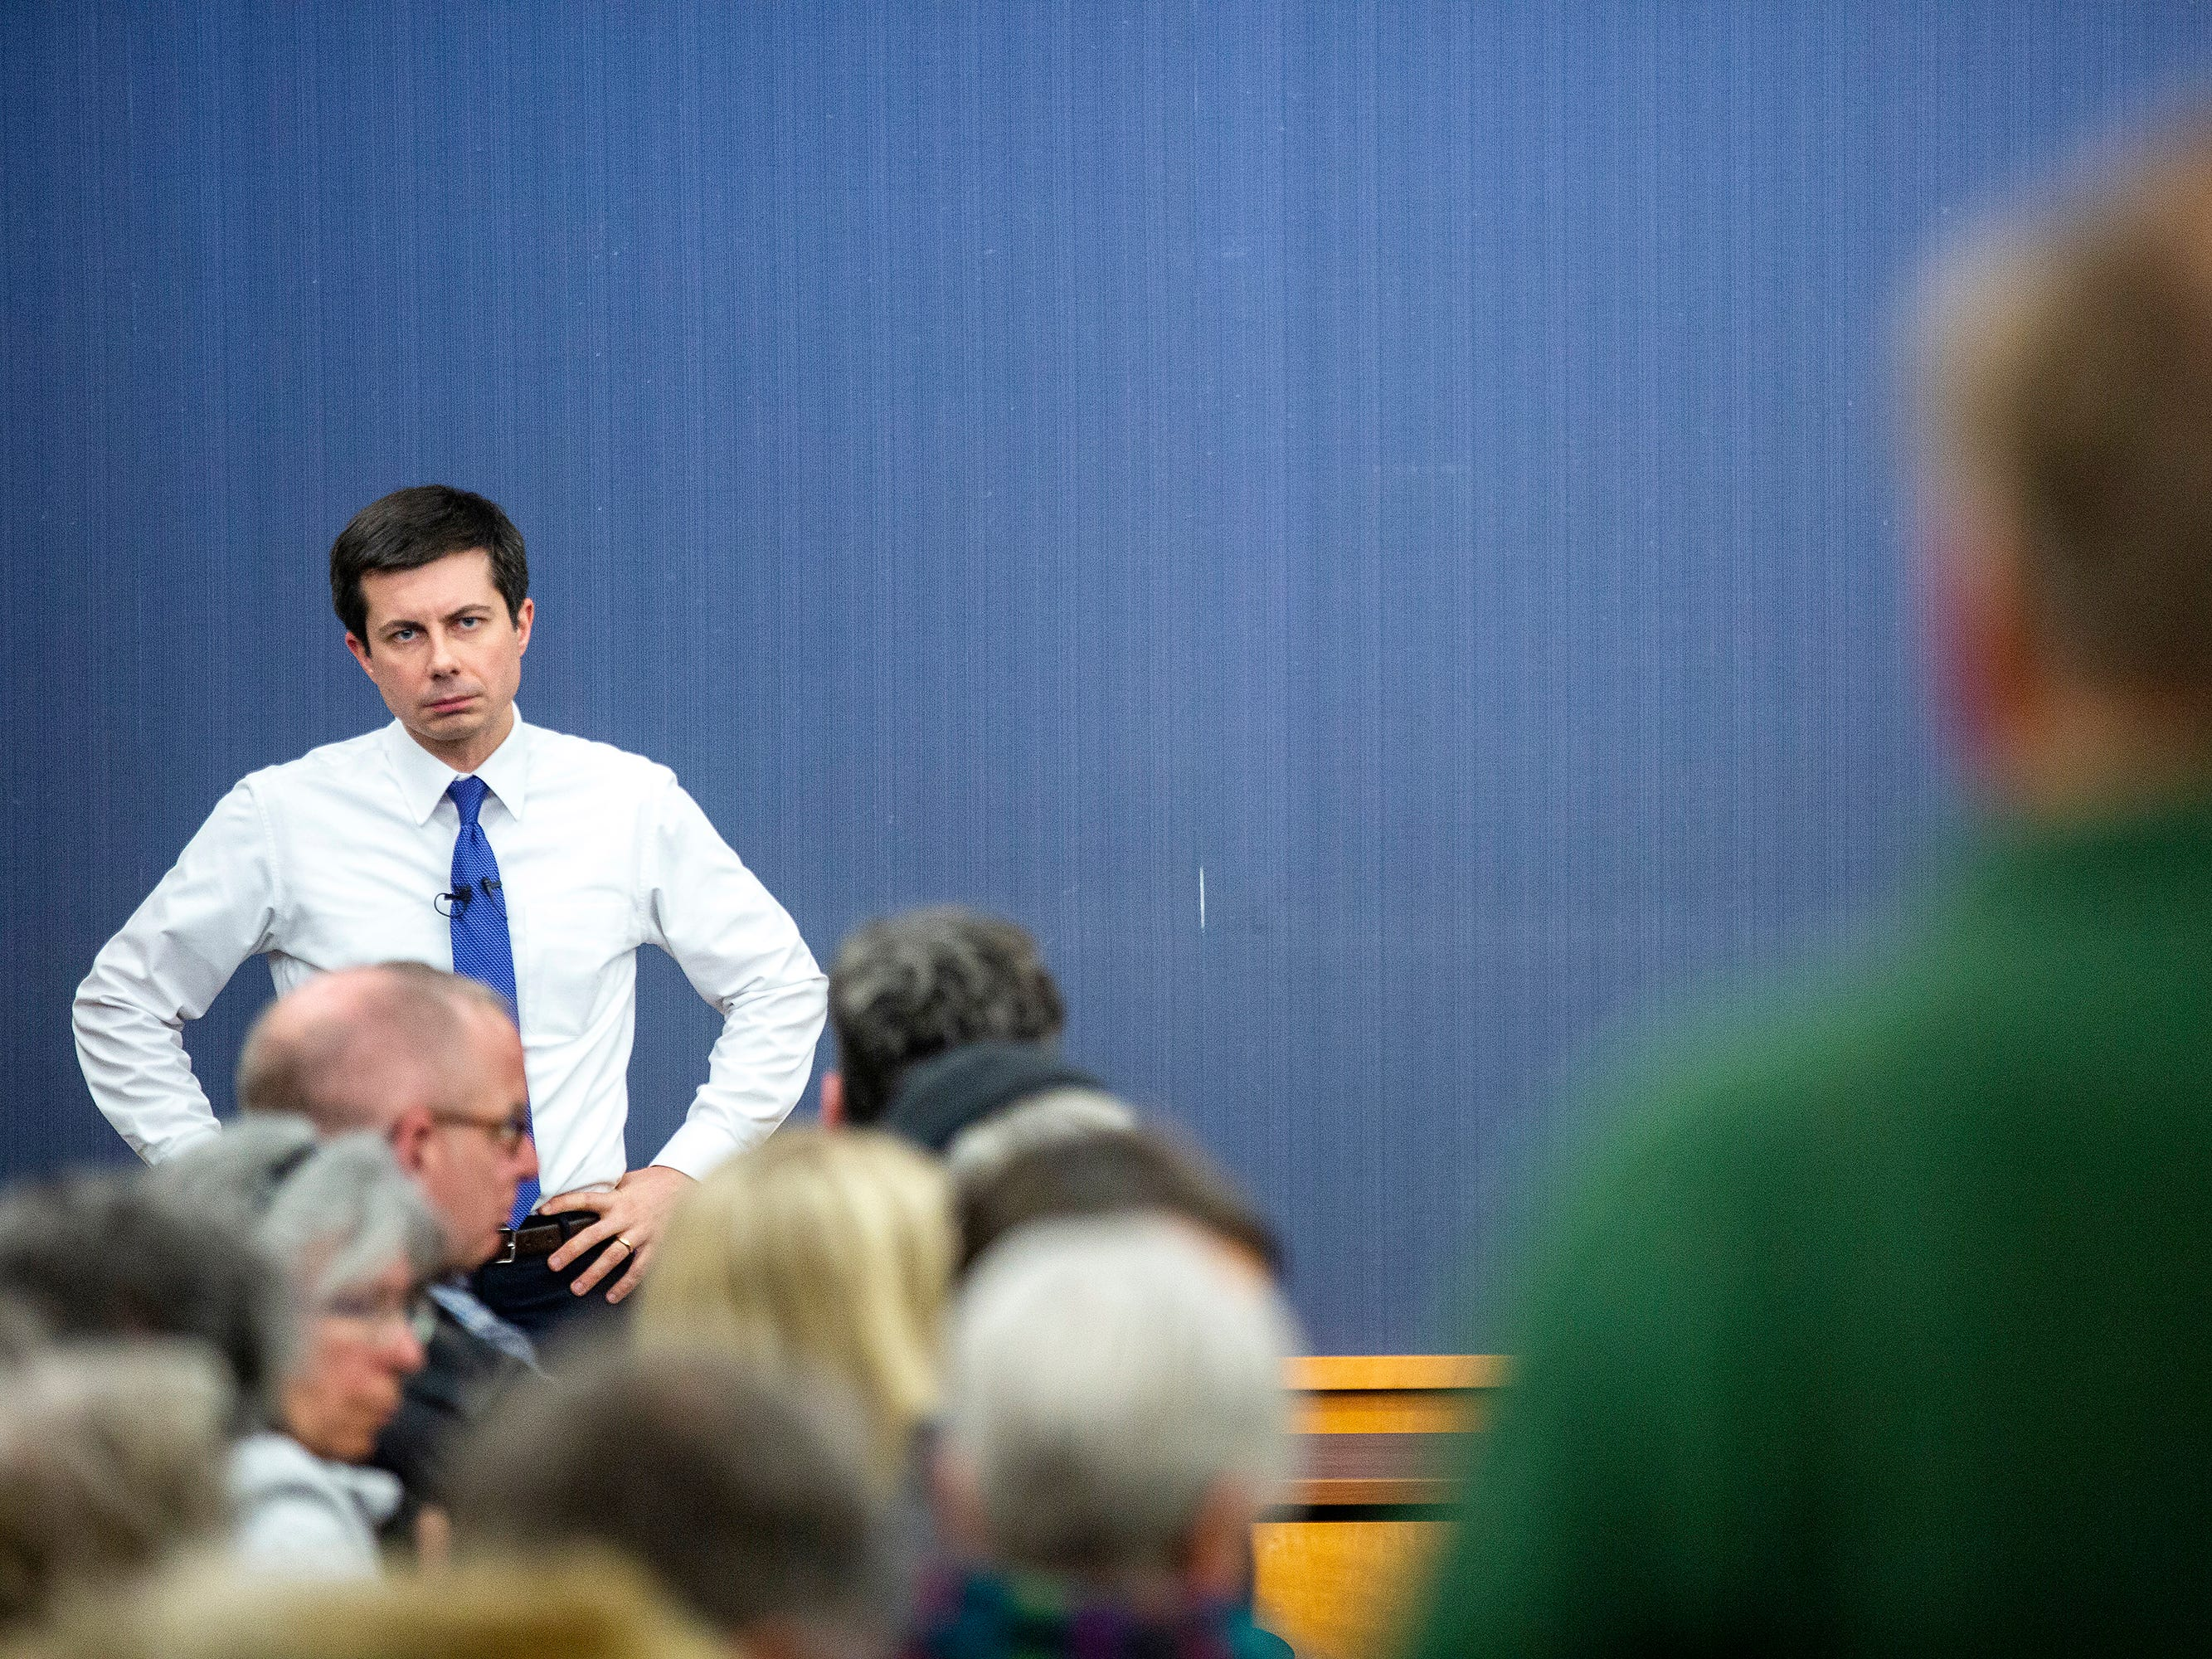 Pete Buttigieg, Mayor of South Bend, Indiana and 2020 Democratic presidential candidate, listens to a question during an event on Monday, March 4, 2019, at the Public Library in downtown Iowa City, Iowa.